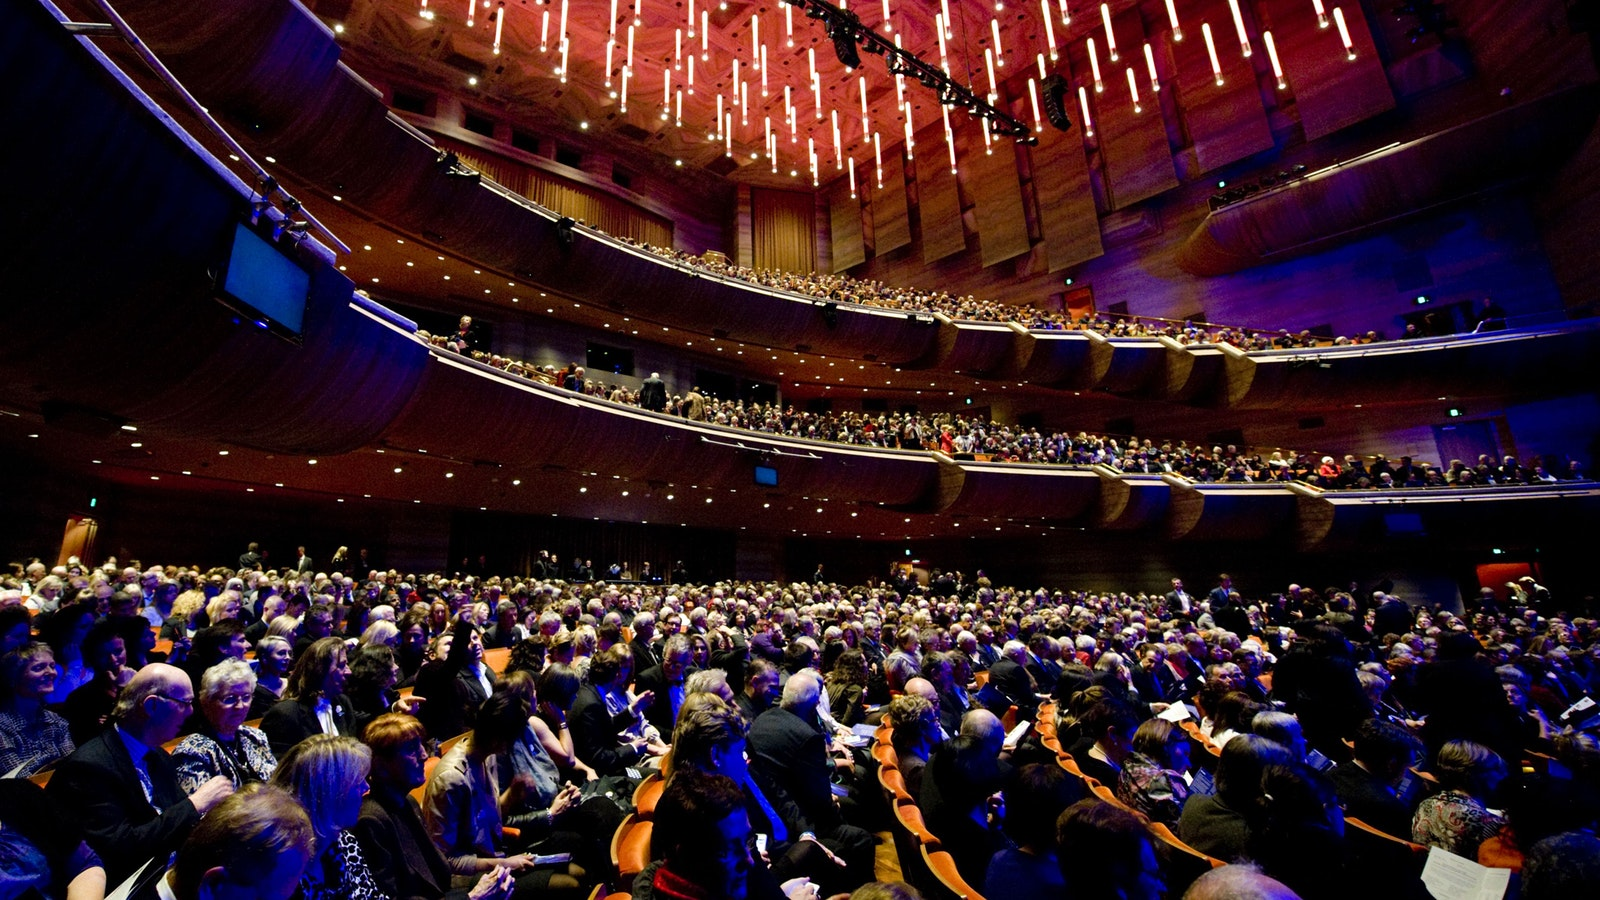 Hamer Hall, Arts Centre Melbourne